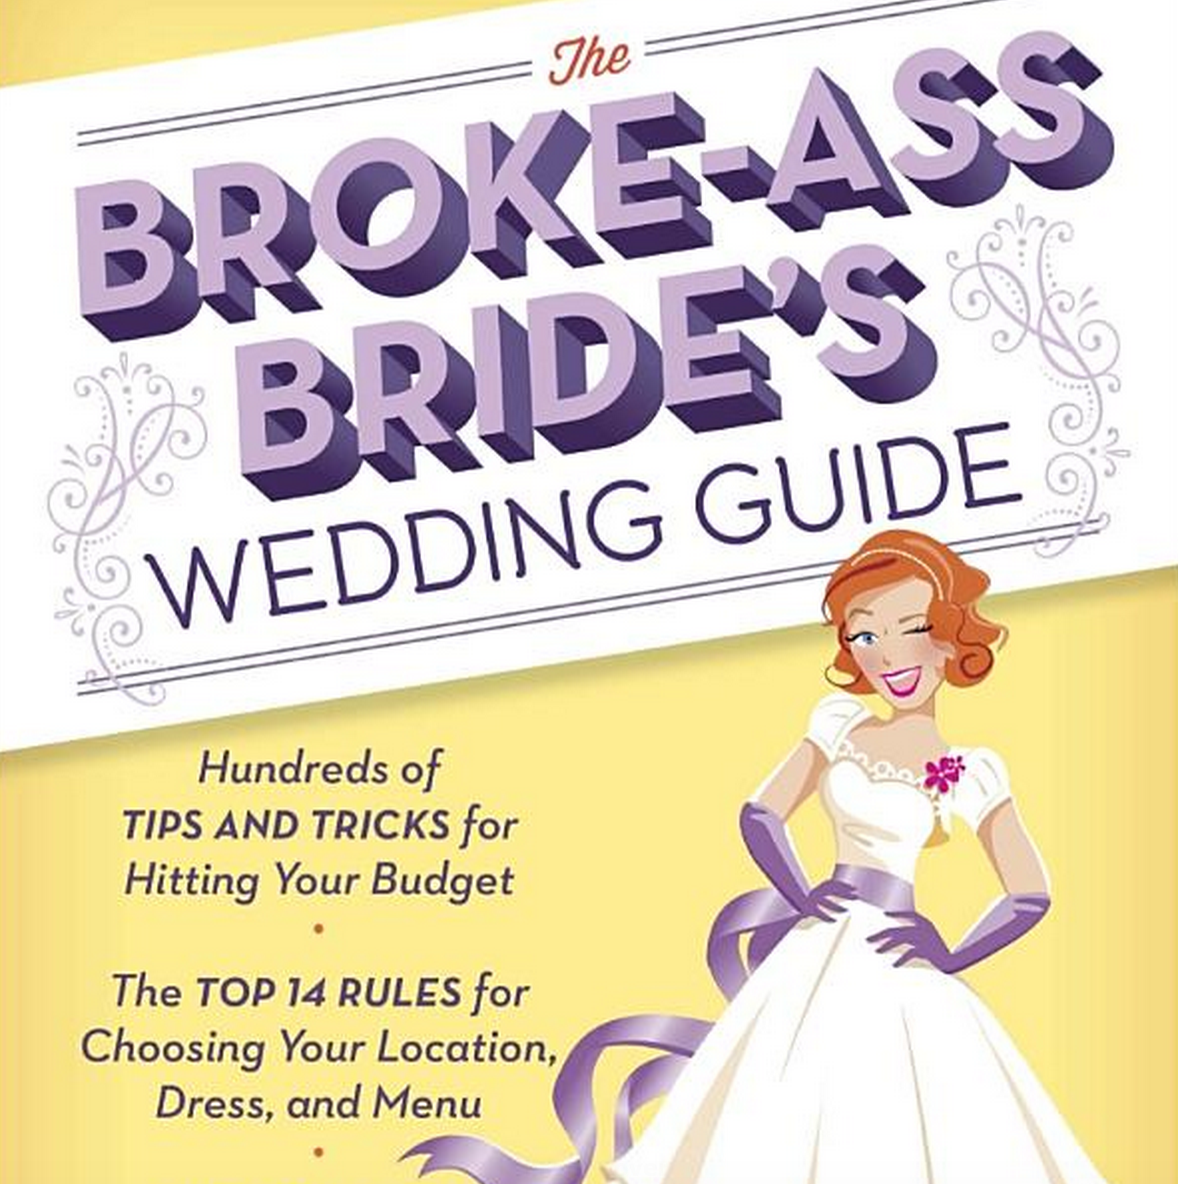 Wedding planning books the only two that matter solutioingenieria Choice Image